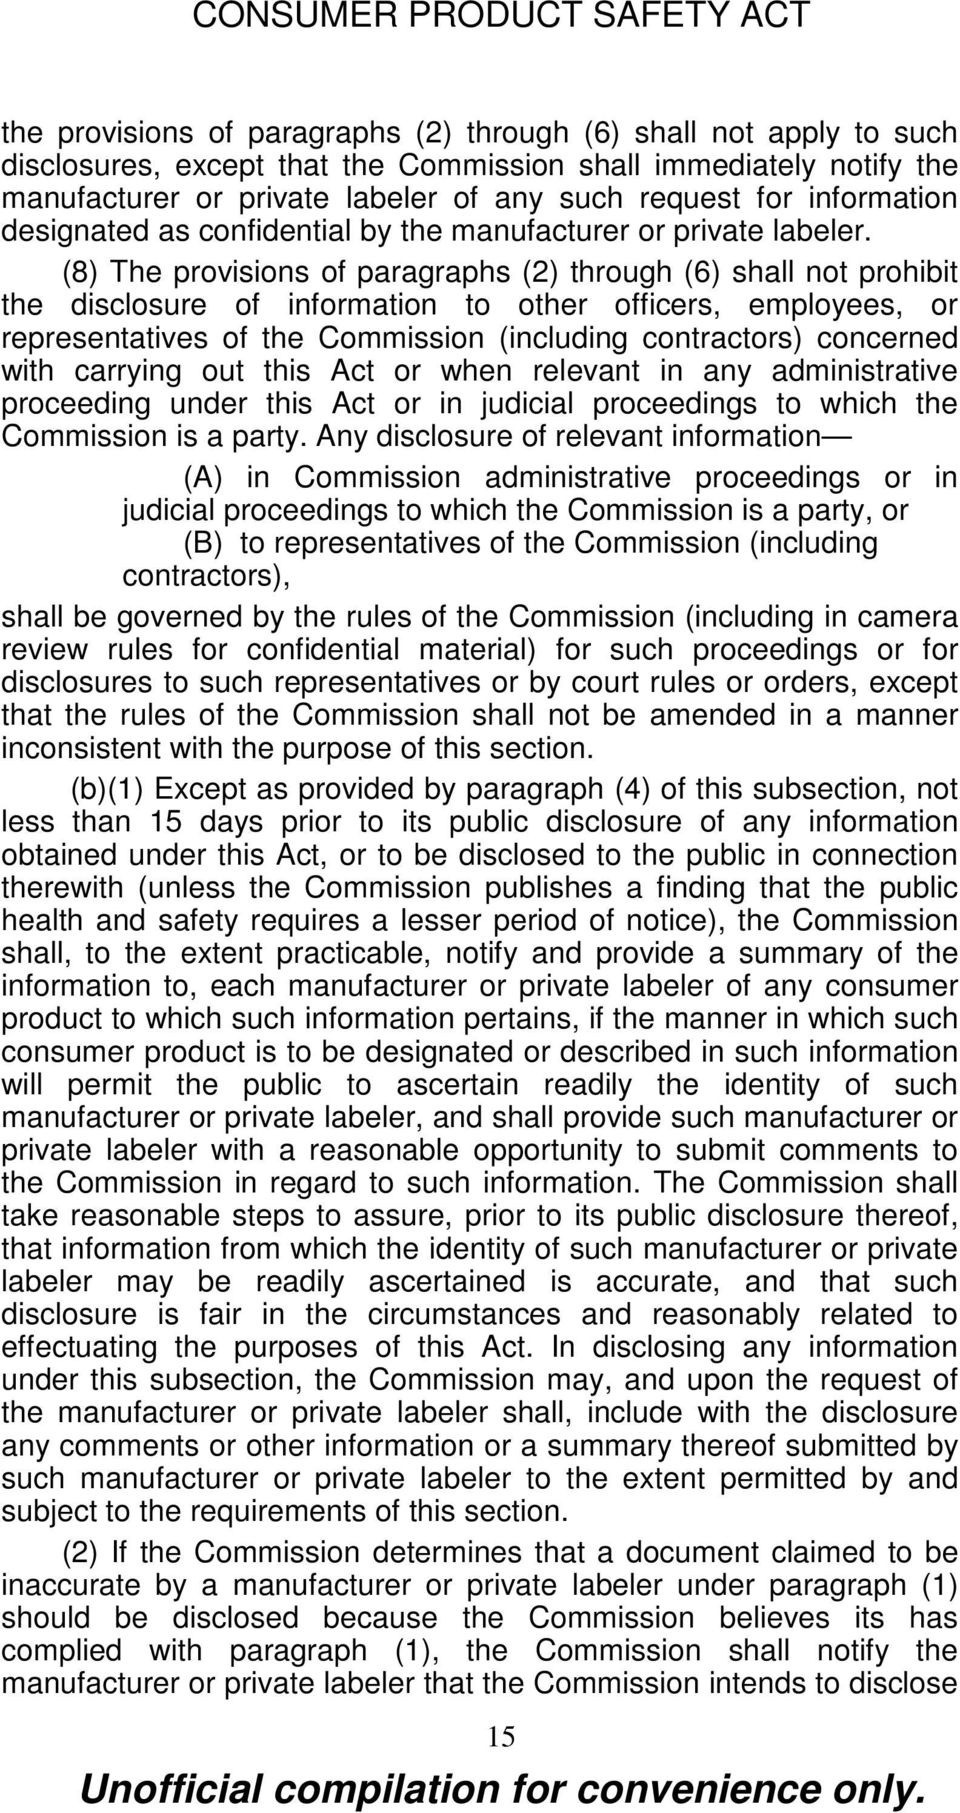 (8) The provisions of paragraphs (2) through (6) shall not prohibit the disclosure of information to other officers, employees, or representatives of the Commission (including contractors) concerned